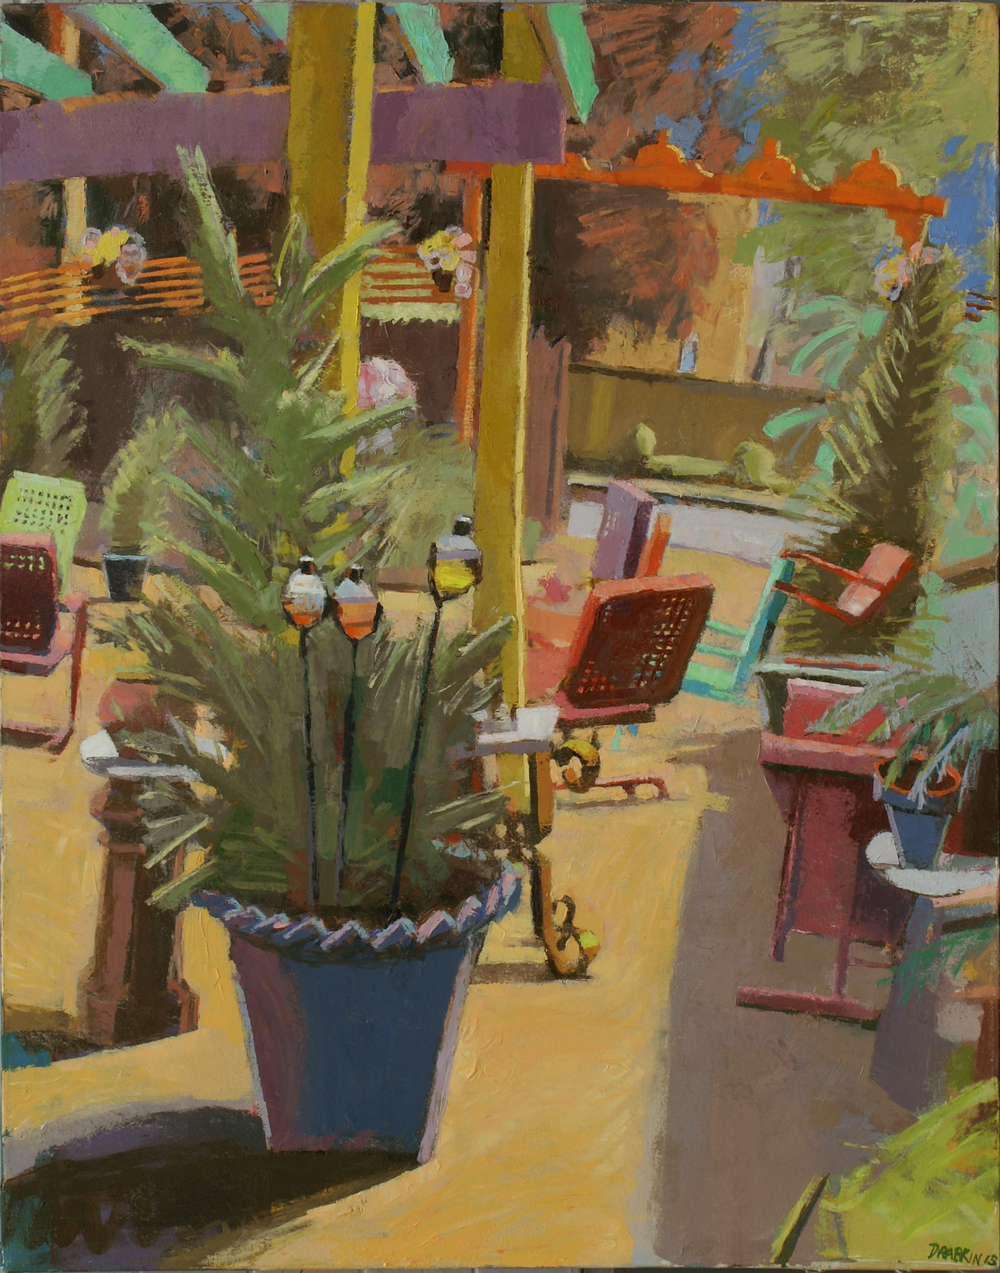 Catherine Drabkin,  Found Object Garden (Randyland) No. 5 , oil on linen, 28 x 22 inches